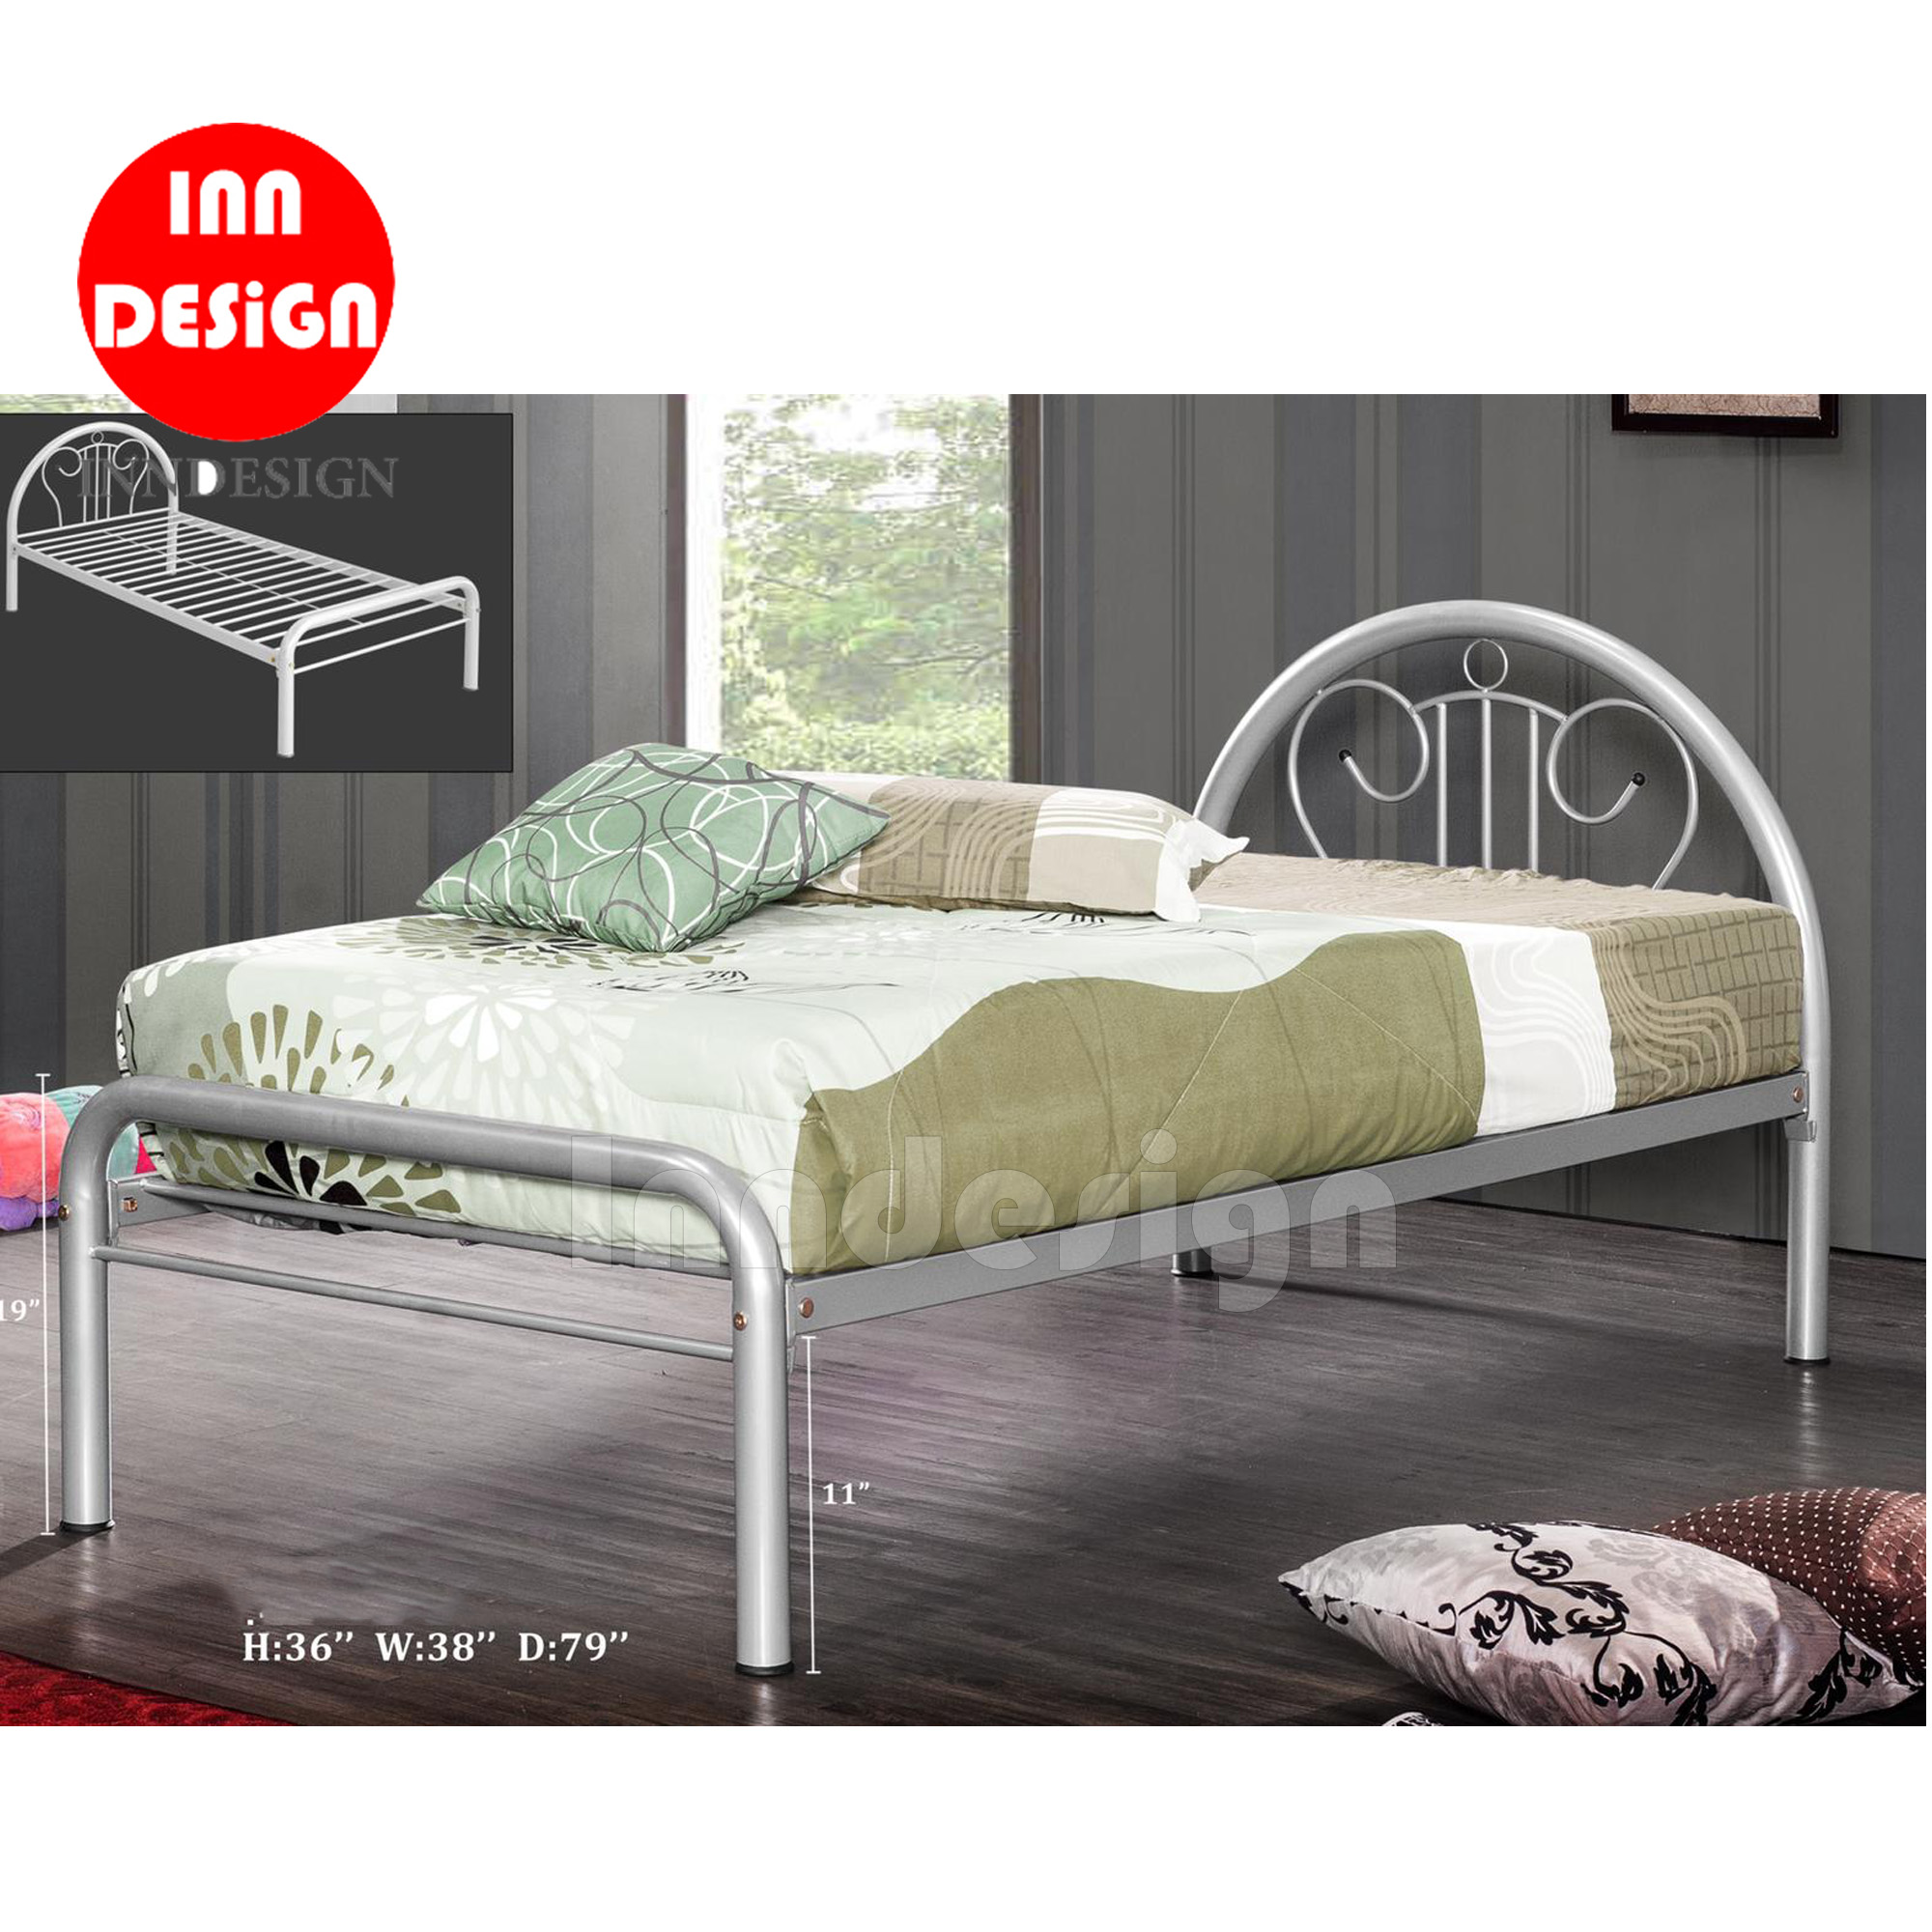 Monica Single Metal Bedframe